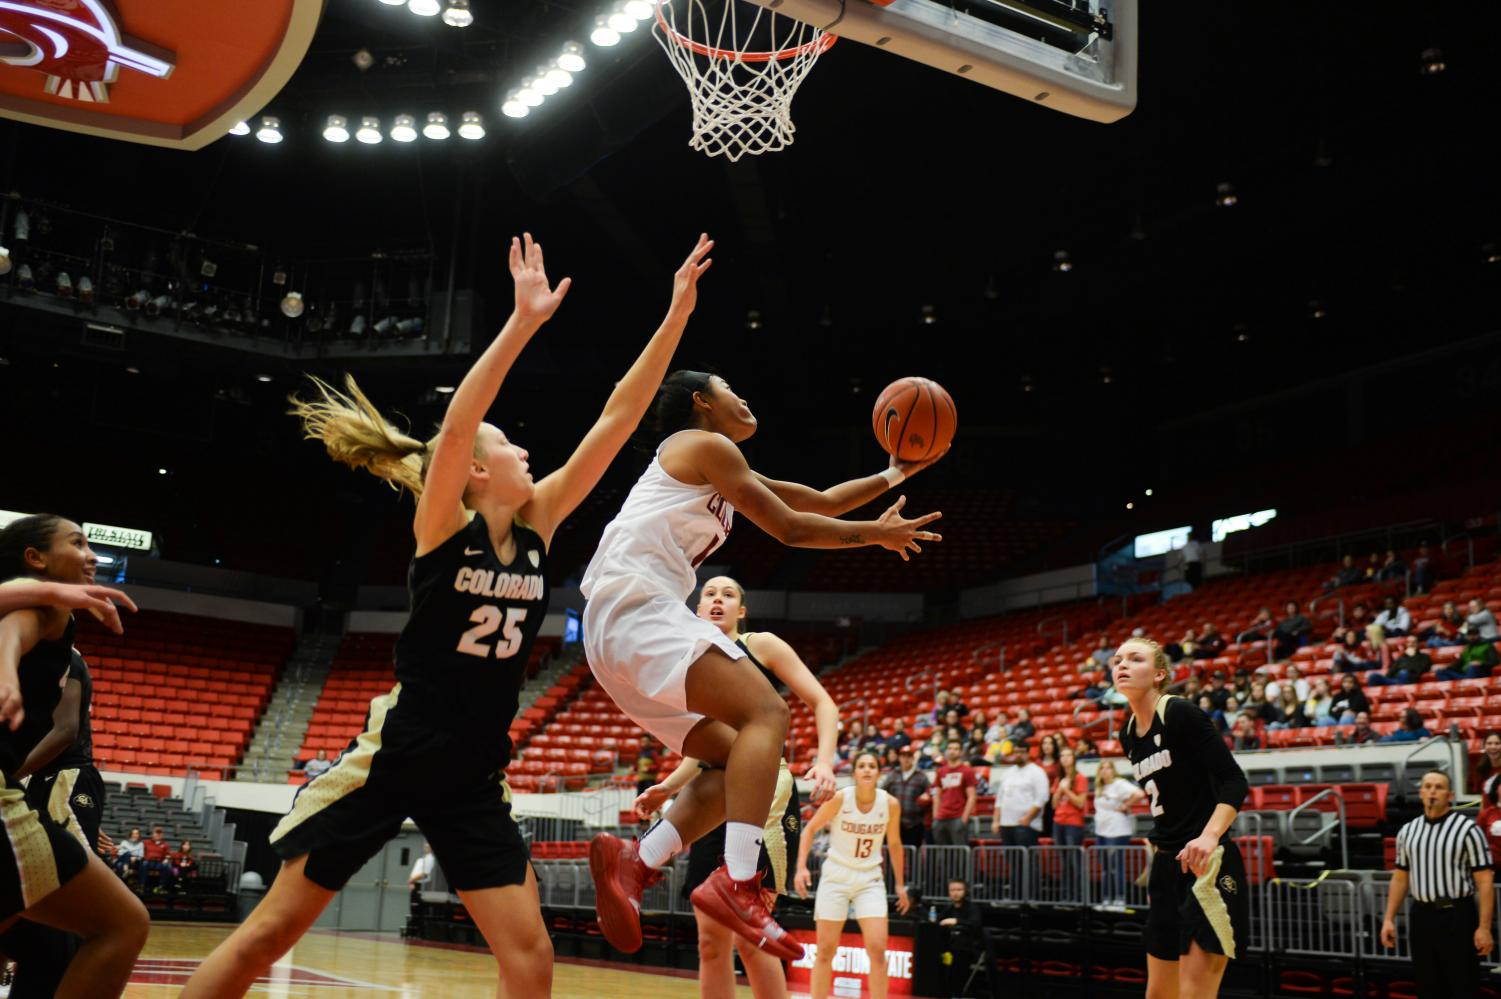 Junior guard Chanelle Molina goes up for a layup during the game against Colorado last Sunday at Beasley Coliseum.